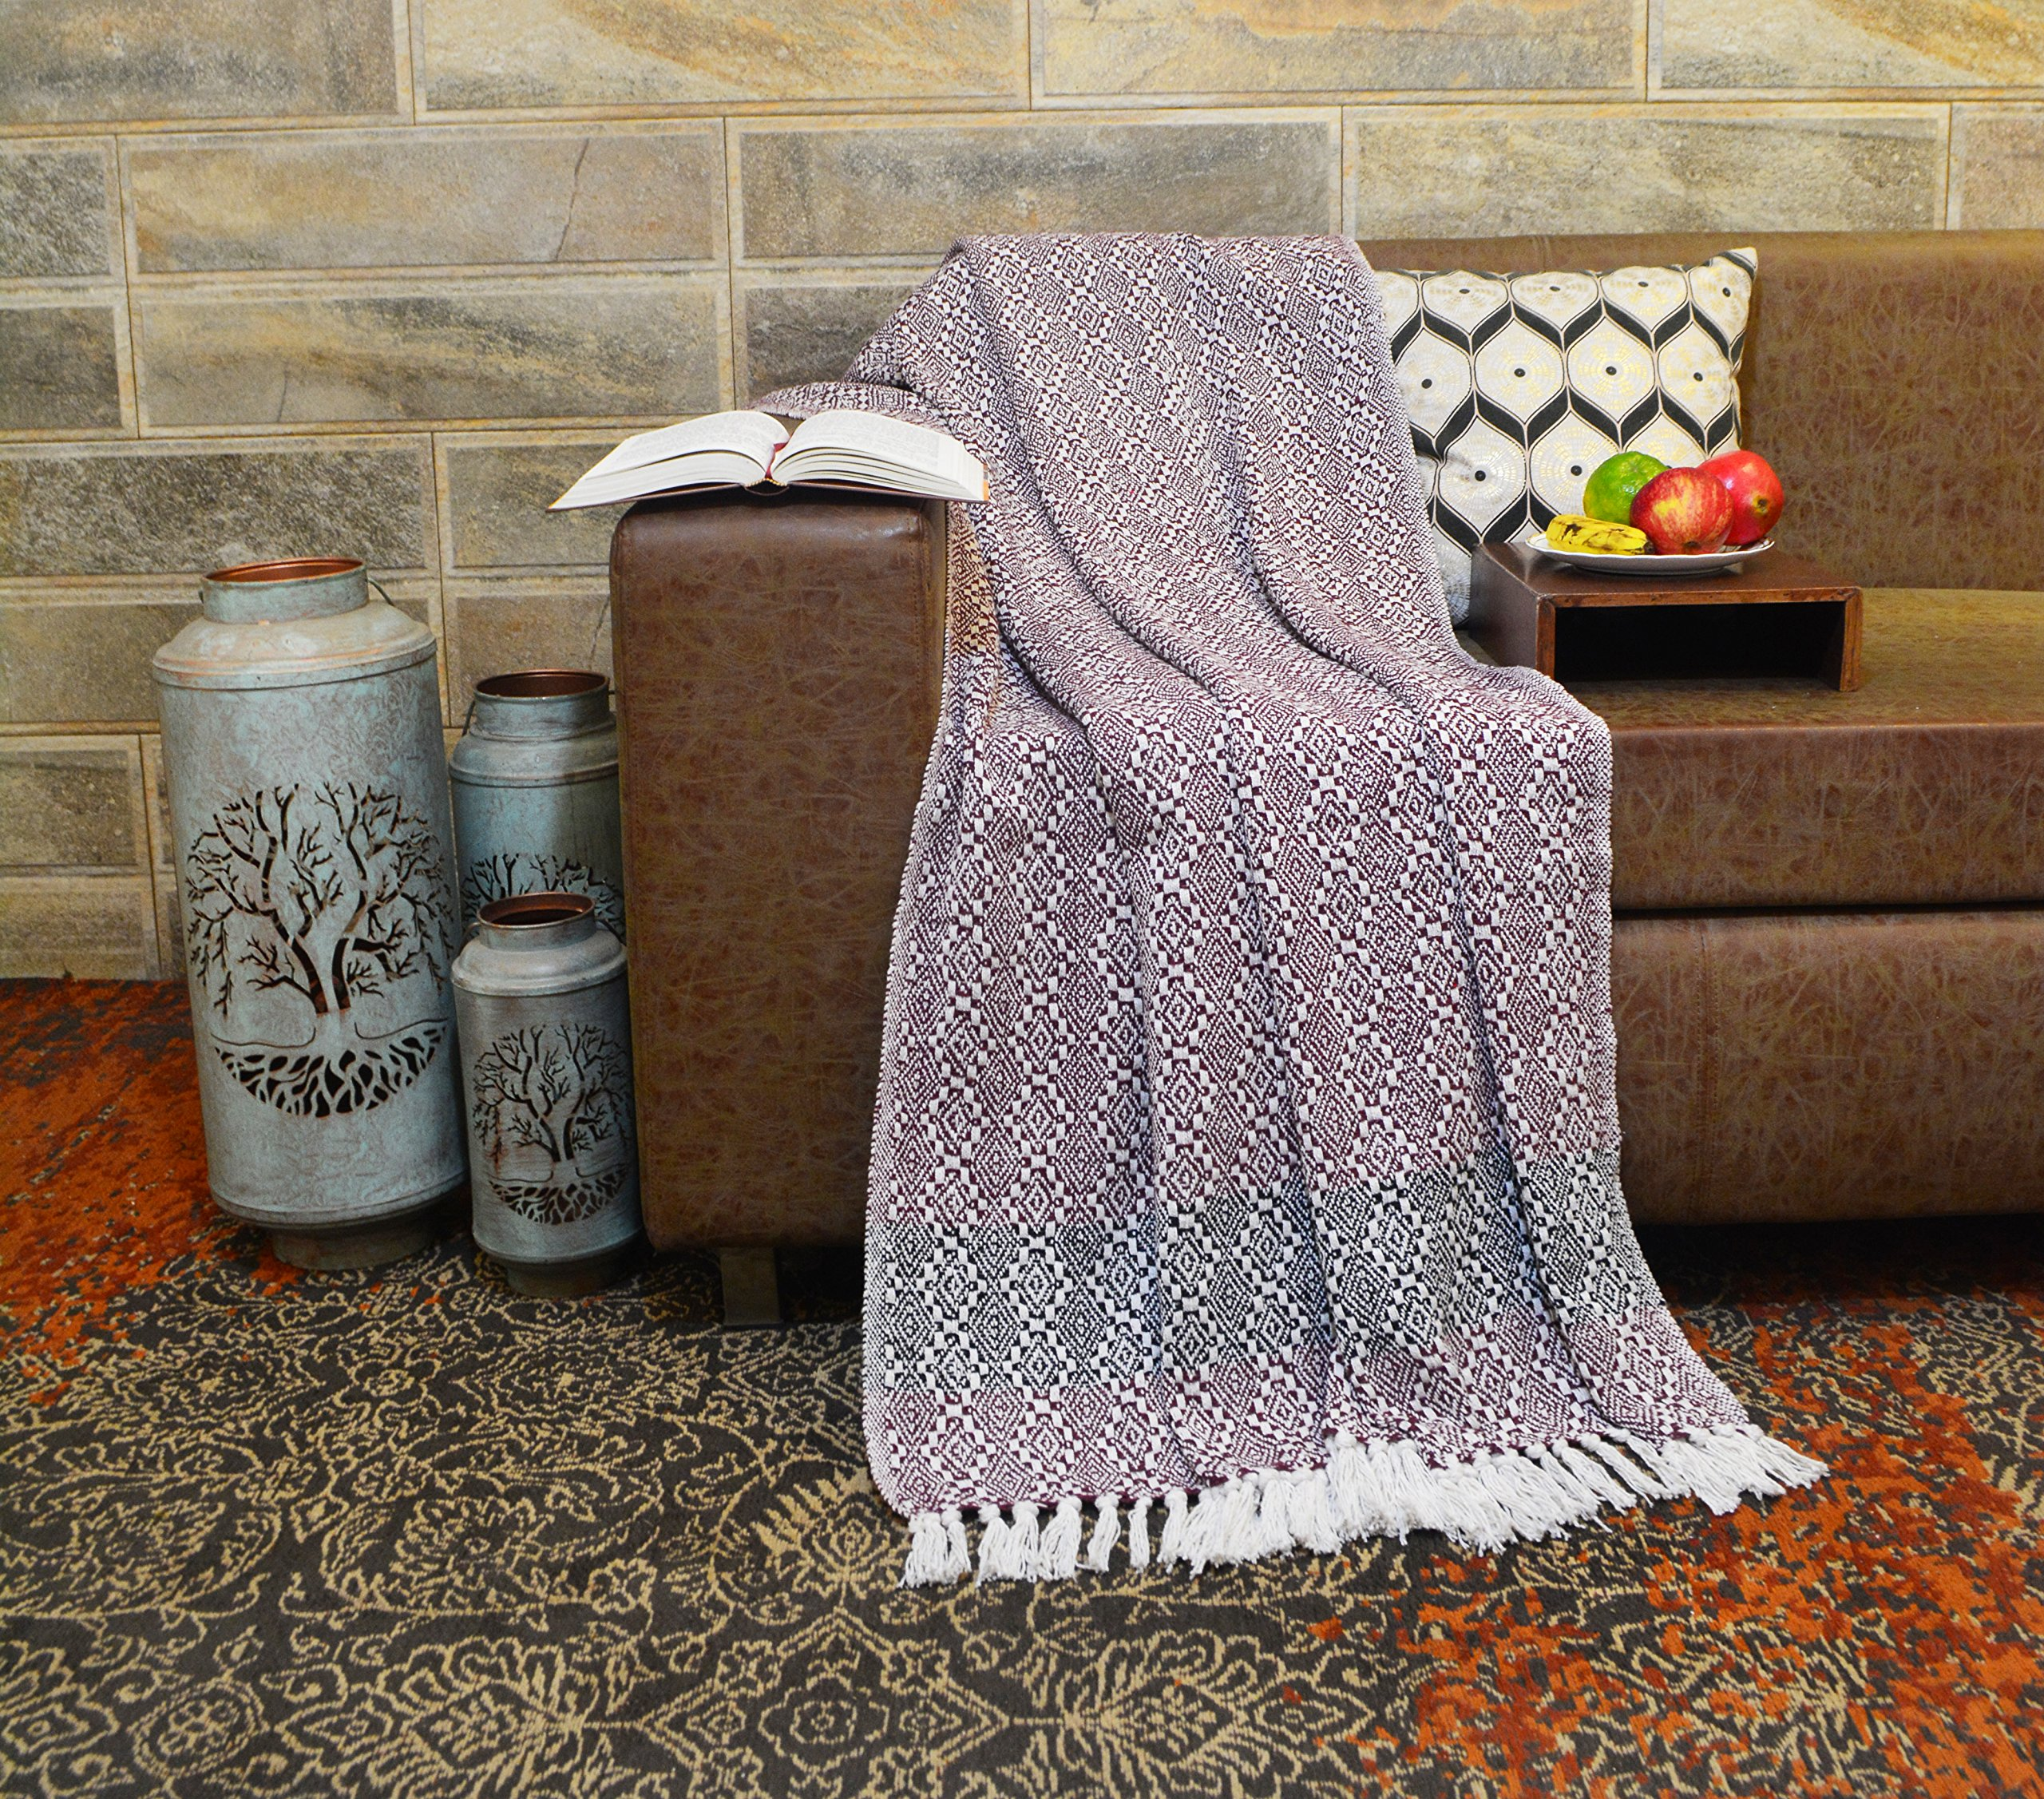 R home Luxury Jacquard Knitted Cotton Throw Blanket With Fringe For Sofa, Gift, Chair, Bed, Beach, Outdoor, Picnic and Everyday Use, Multi color, 50 x 70 Inch Throws